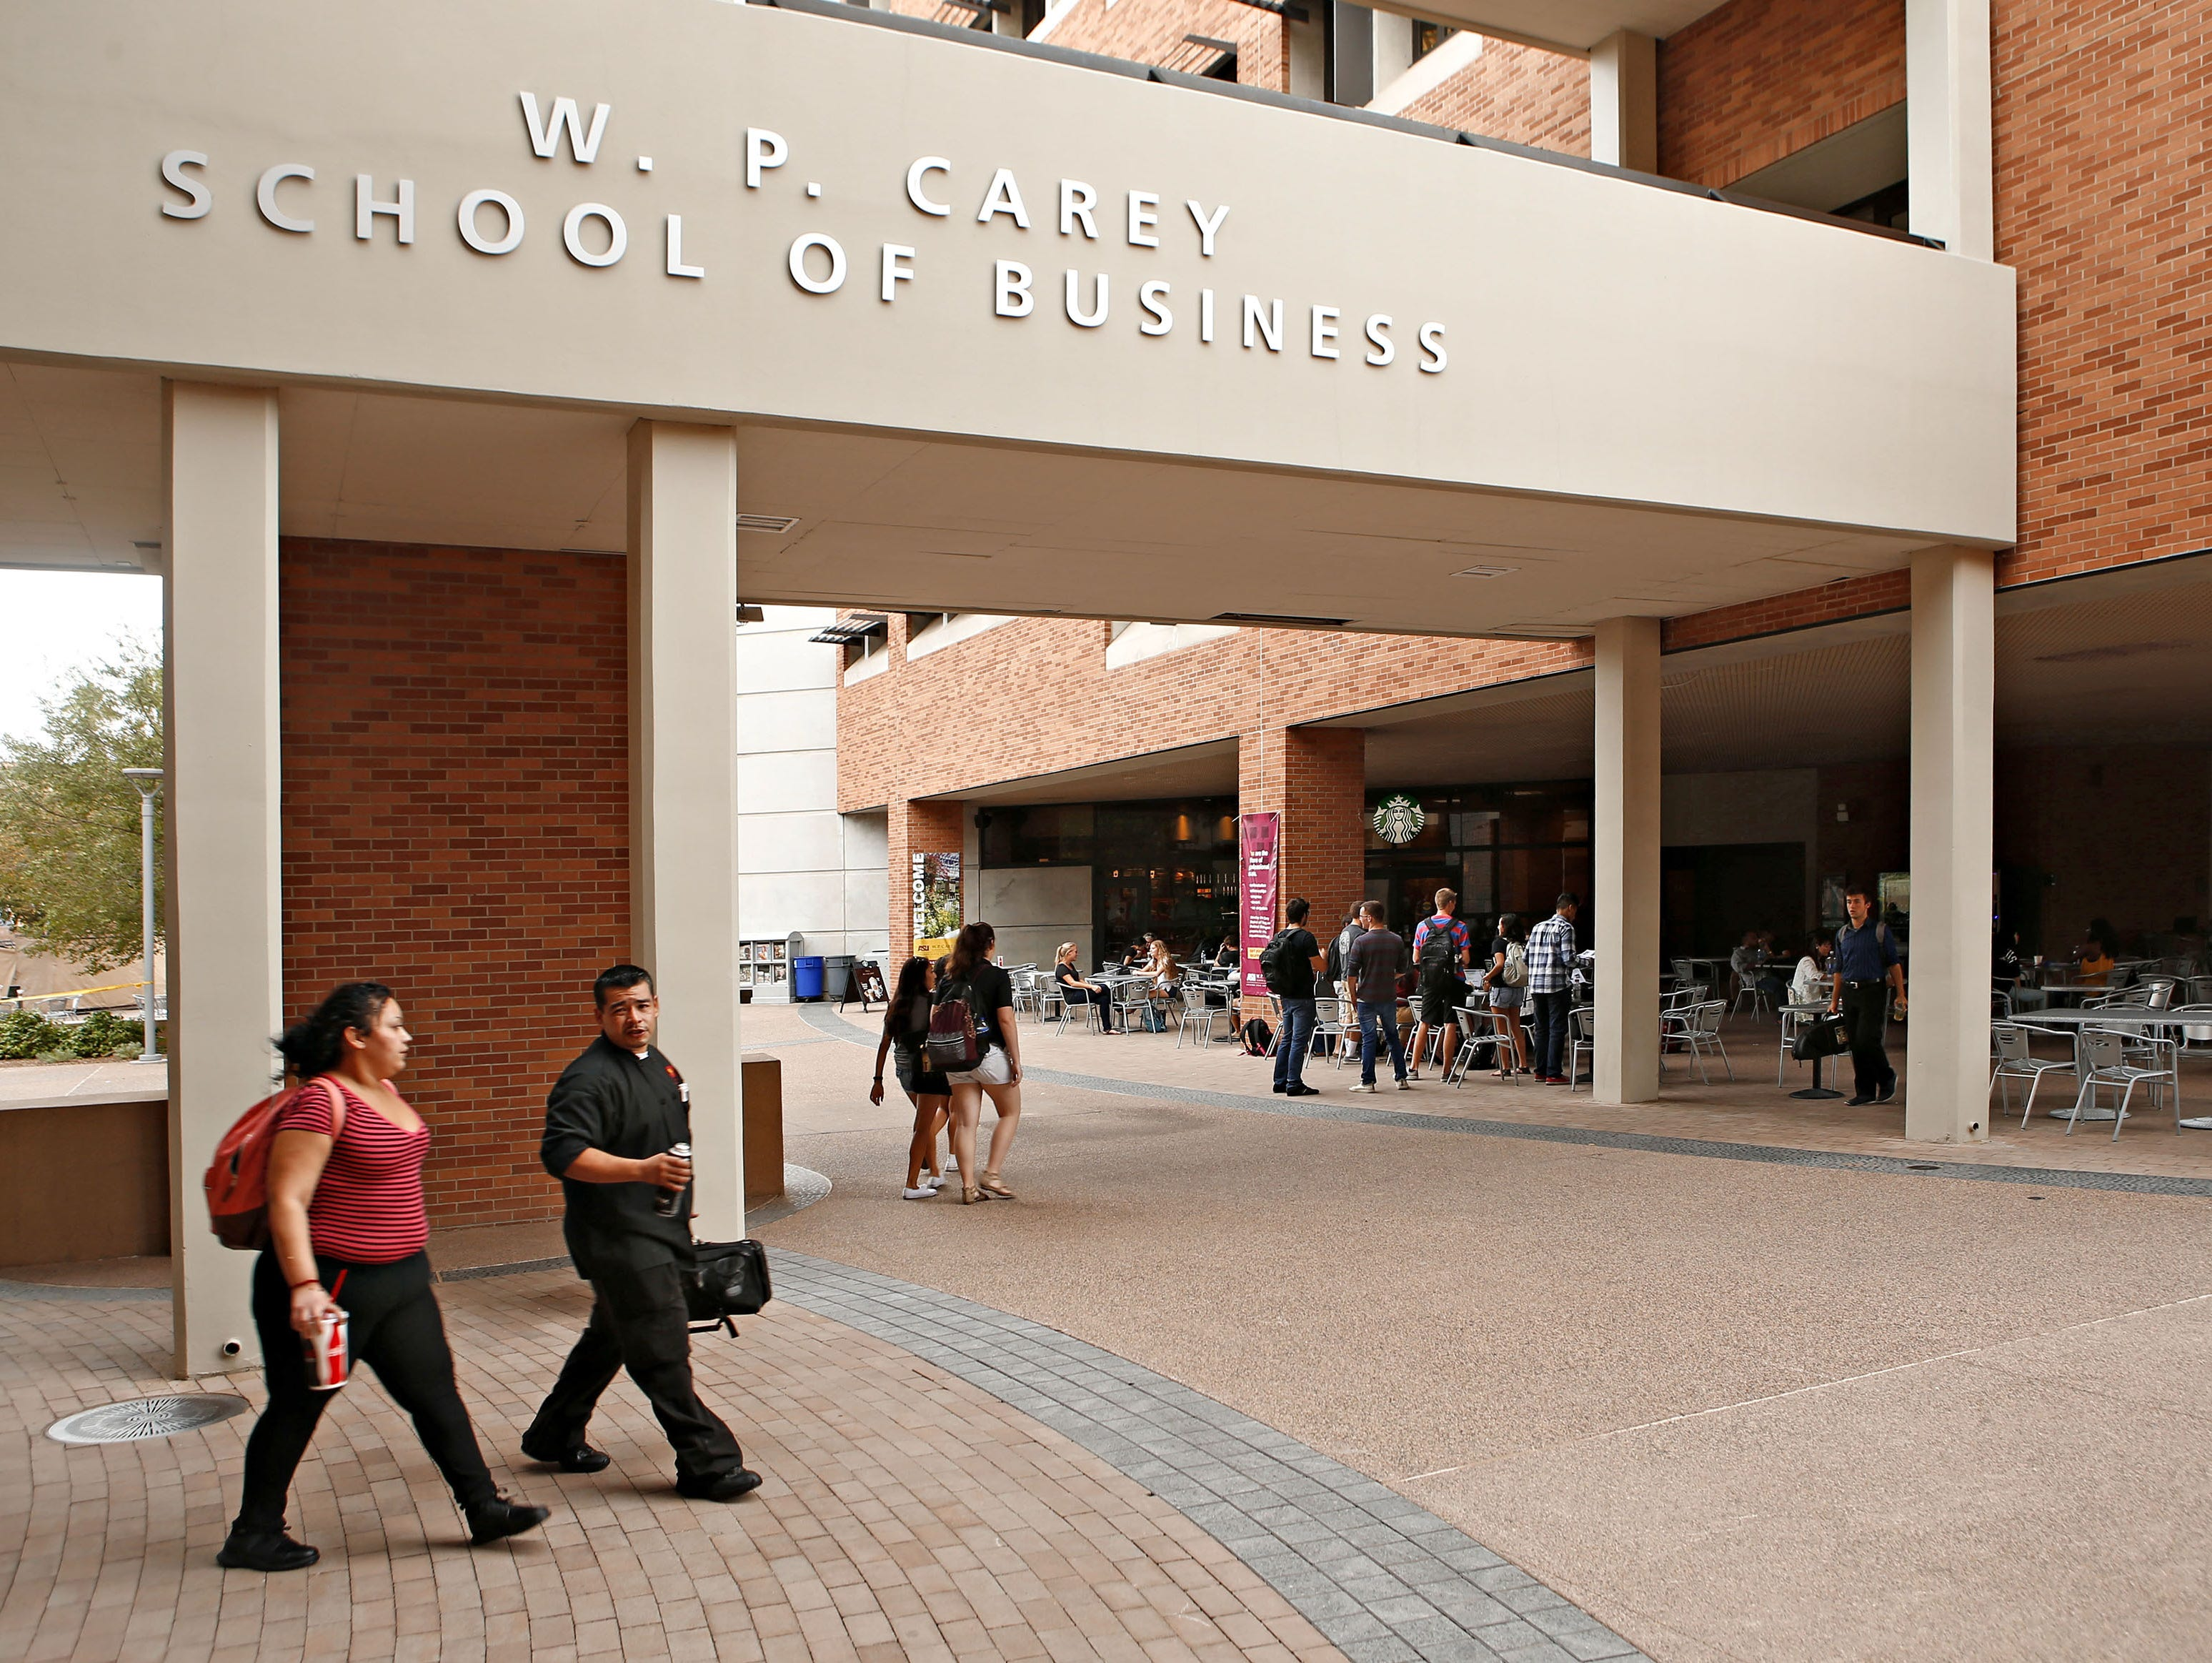 Pedestrians pass The W. P. Carey School of Business at Arizona State University's campus Tempe on Oct. 15, 2015.